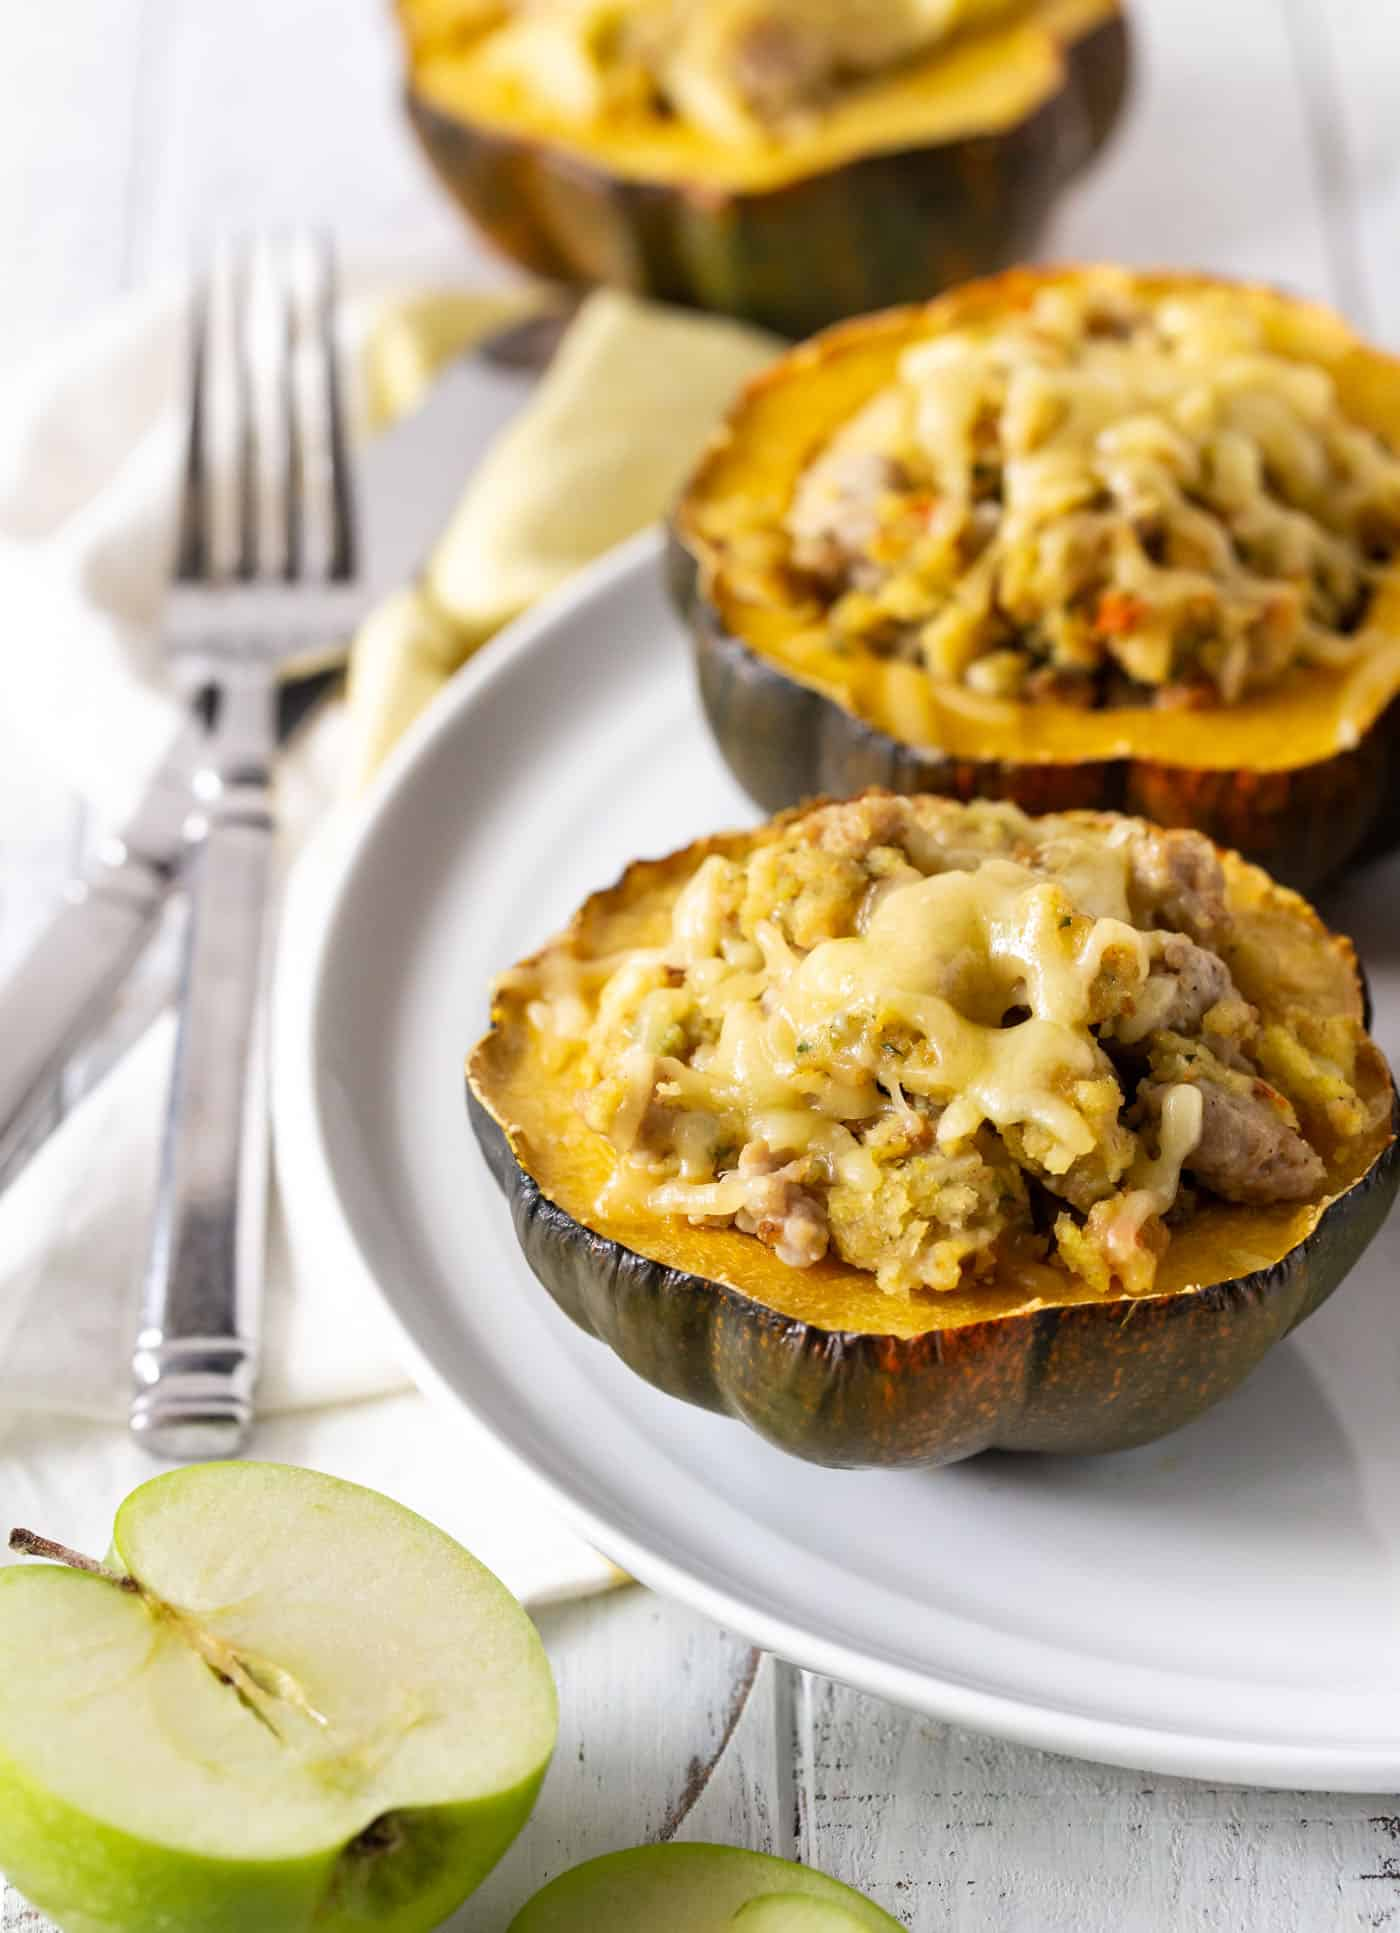 2 halves of Apple and Sausage Stuffed Acorn Squash on a white plate with fork and knife.